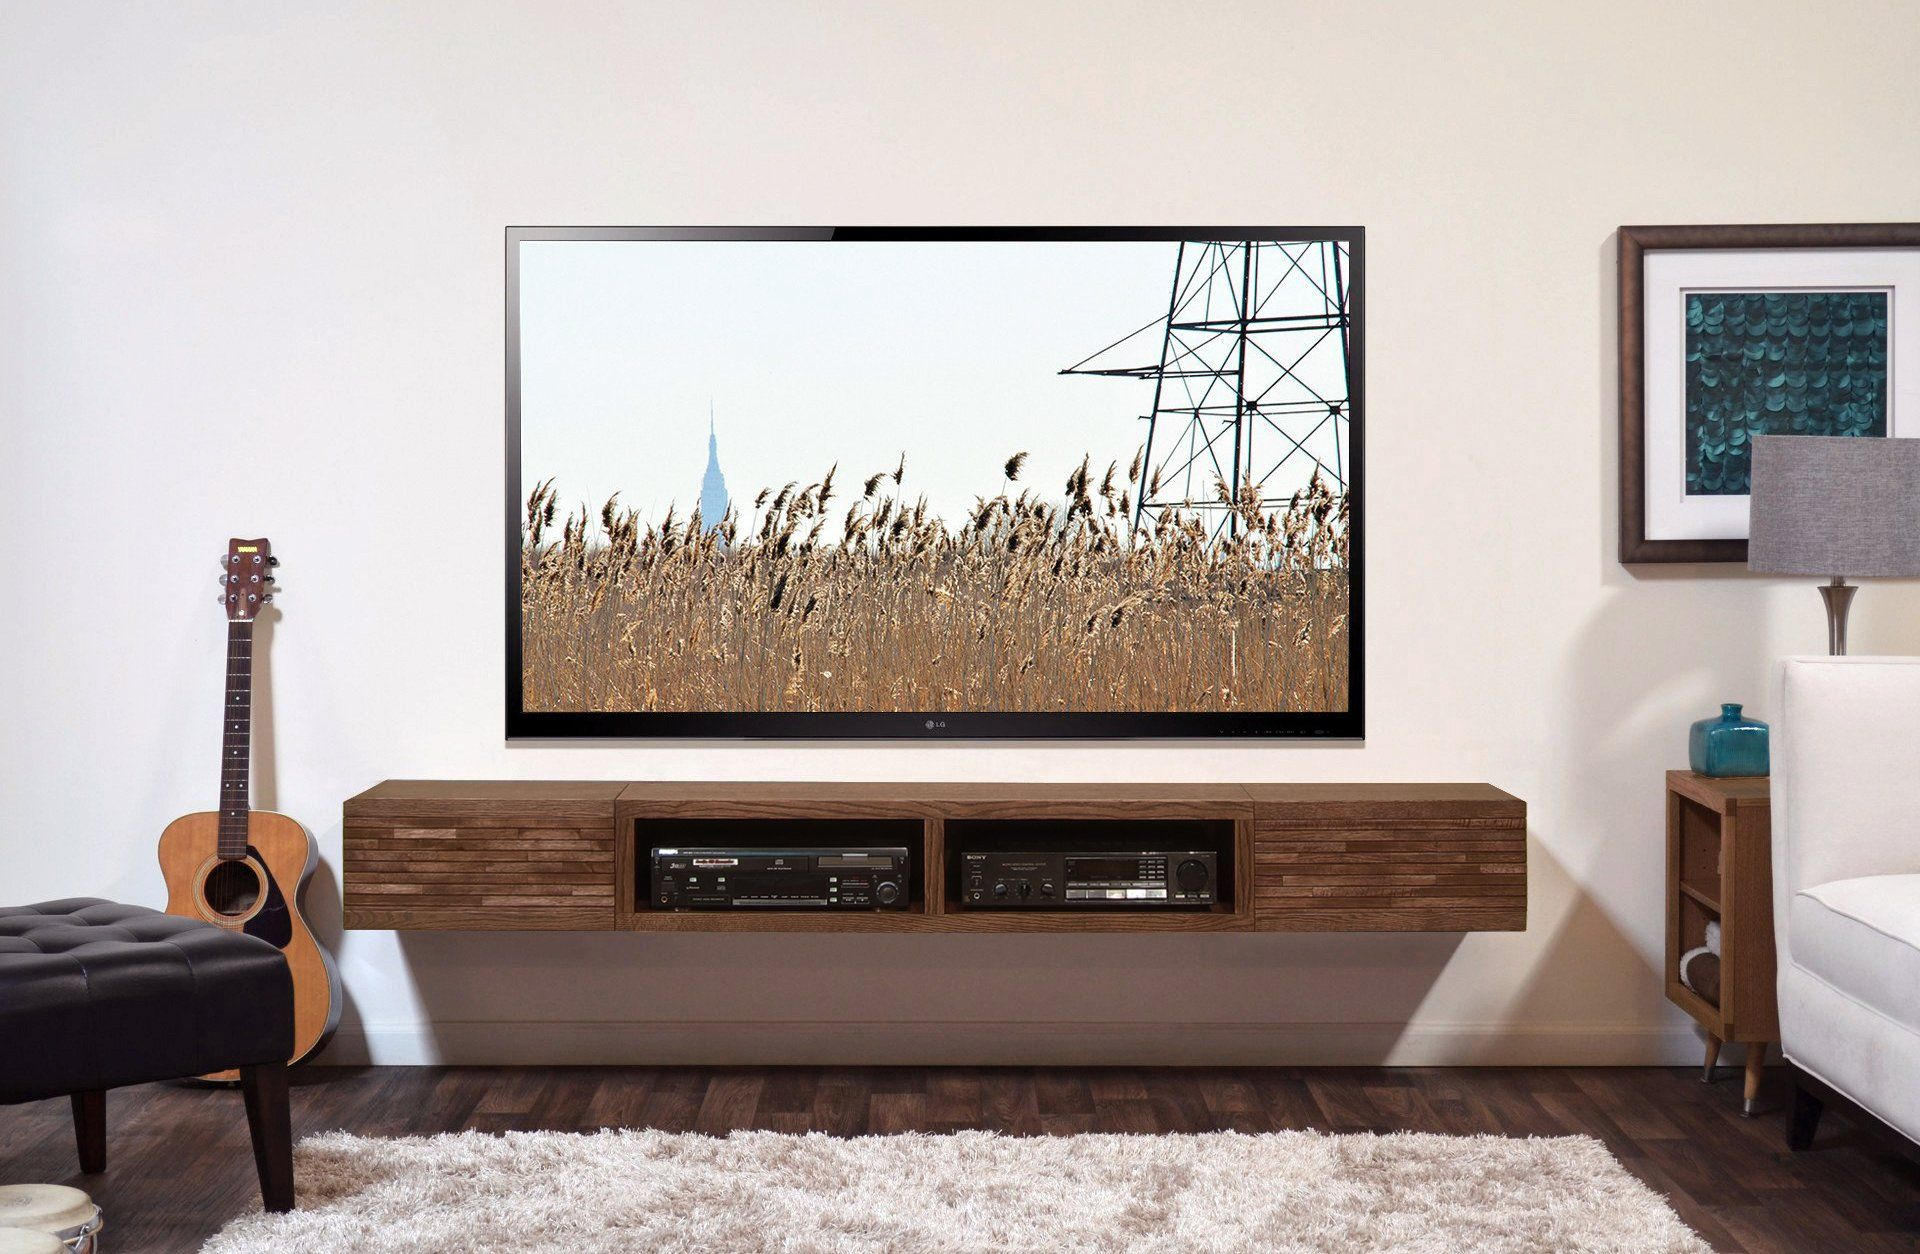 Floating Tv Stand Mid Century Modern Wall Mount Entertainment Center Save 200 With This Floating Tv Stand Modern Entertainment Center Diy Entertainment Center